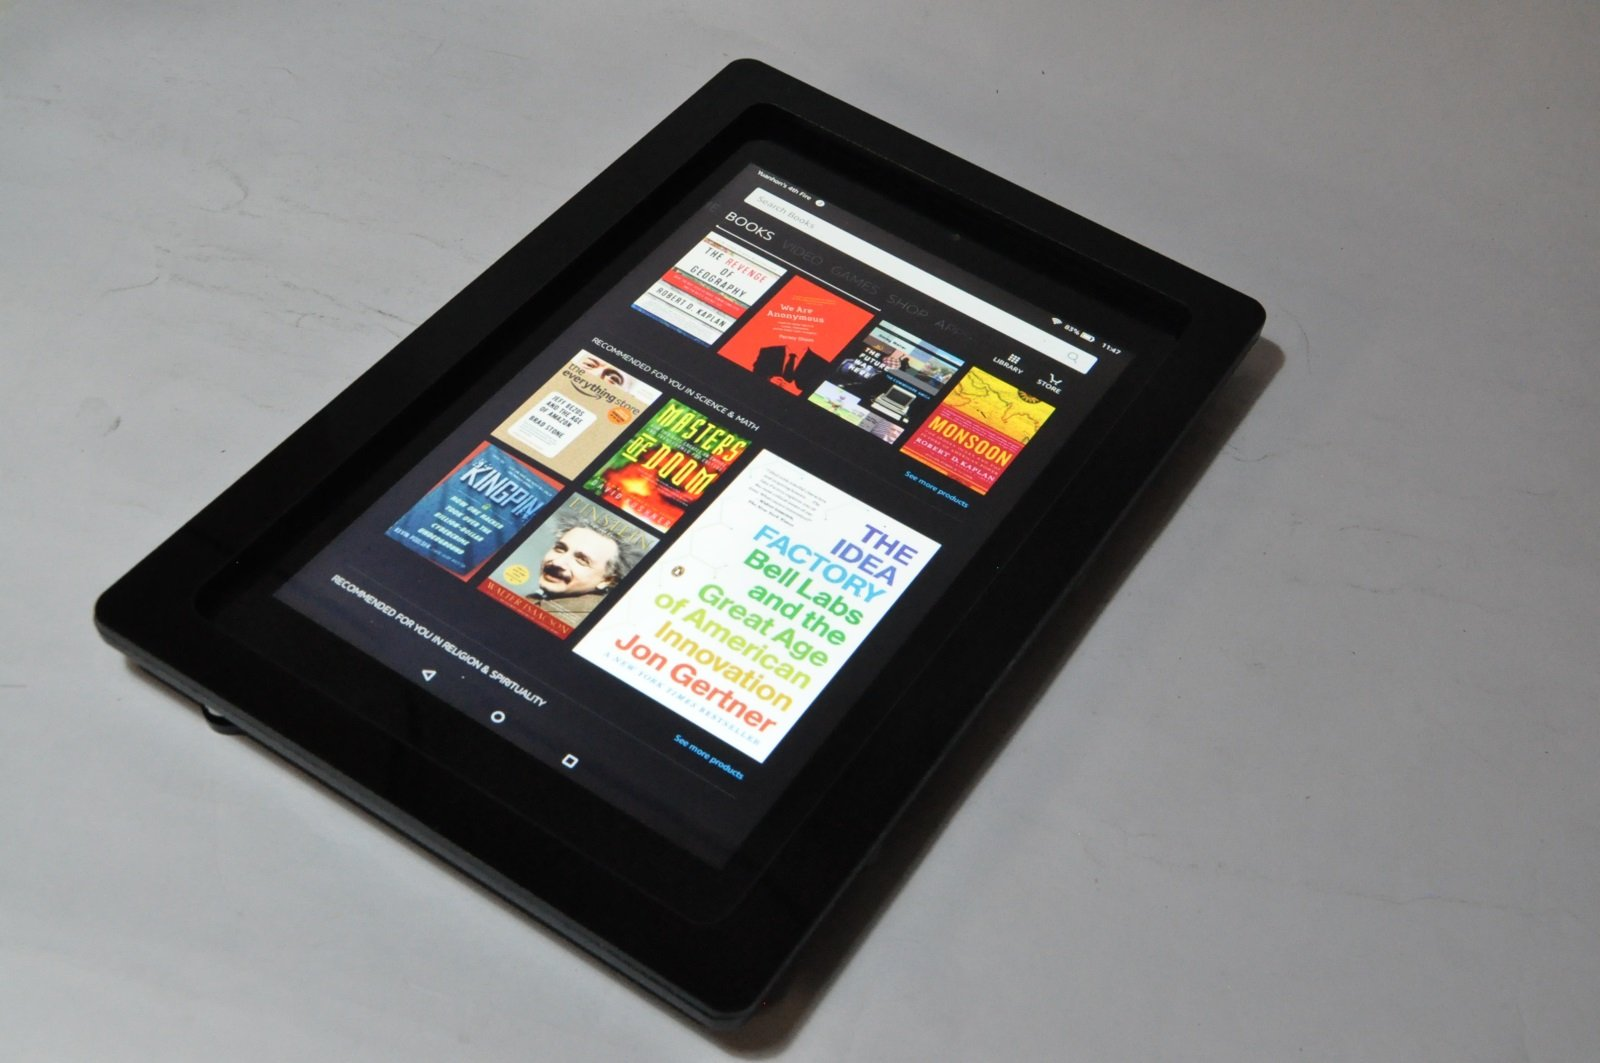 TABcare Compatible with Kindle Fire HD 10 Security Acrylic VESA Kit for POS, Kiosk, Store, Show Display (Black)